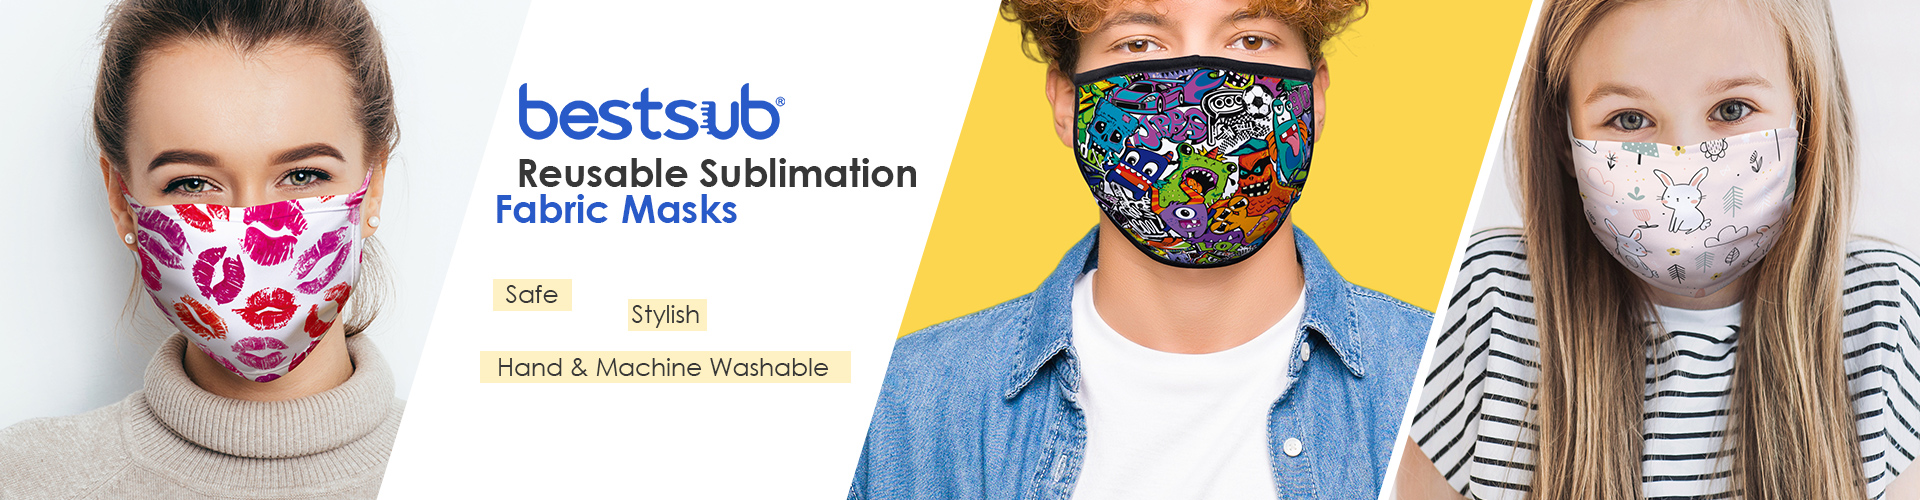 2020-4-21_Reusable_Sublimation_Fabric_Masks_new_web